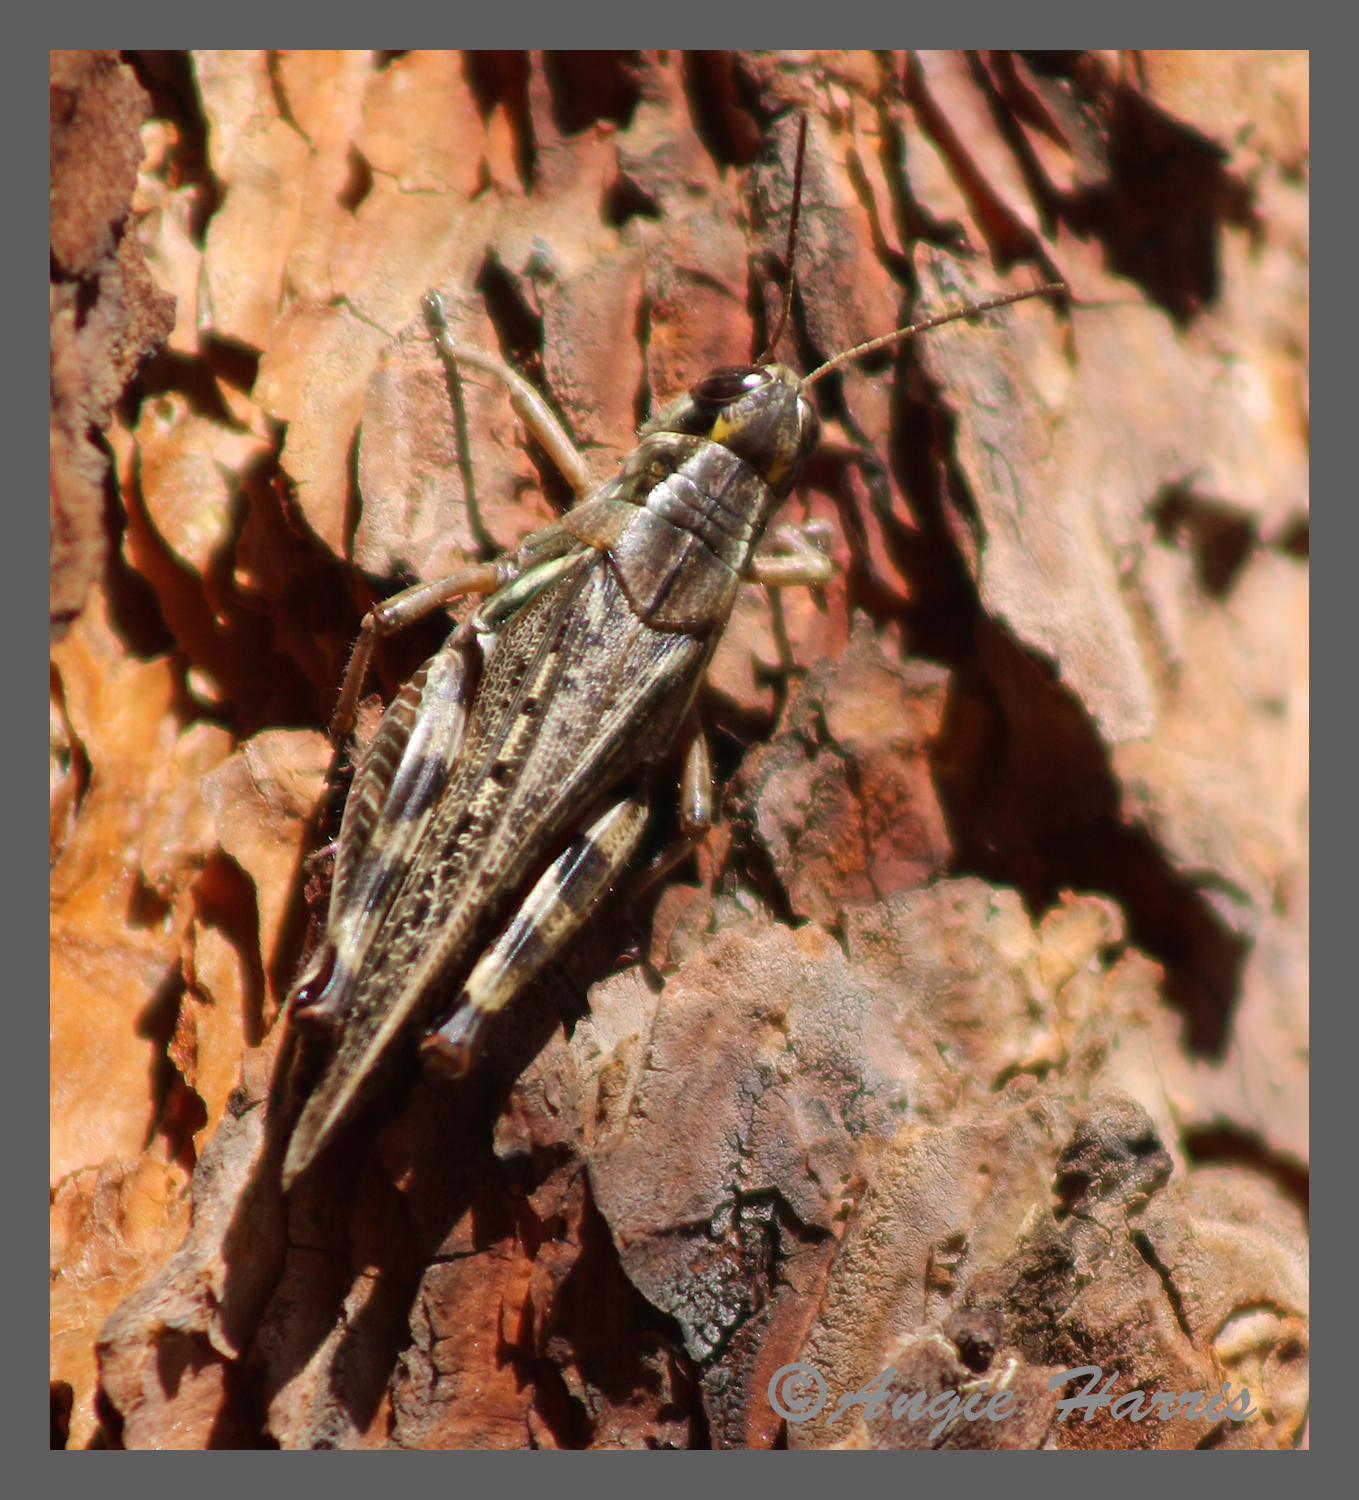 Grasshoppers like this one were so abundant that you could not walk a single step without sending a dozen hopping through the leaves.  The sound gave me the impression that there was an army stomping through the leaves all around me!